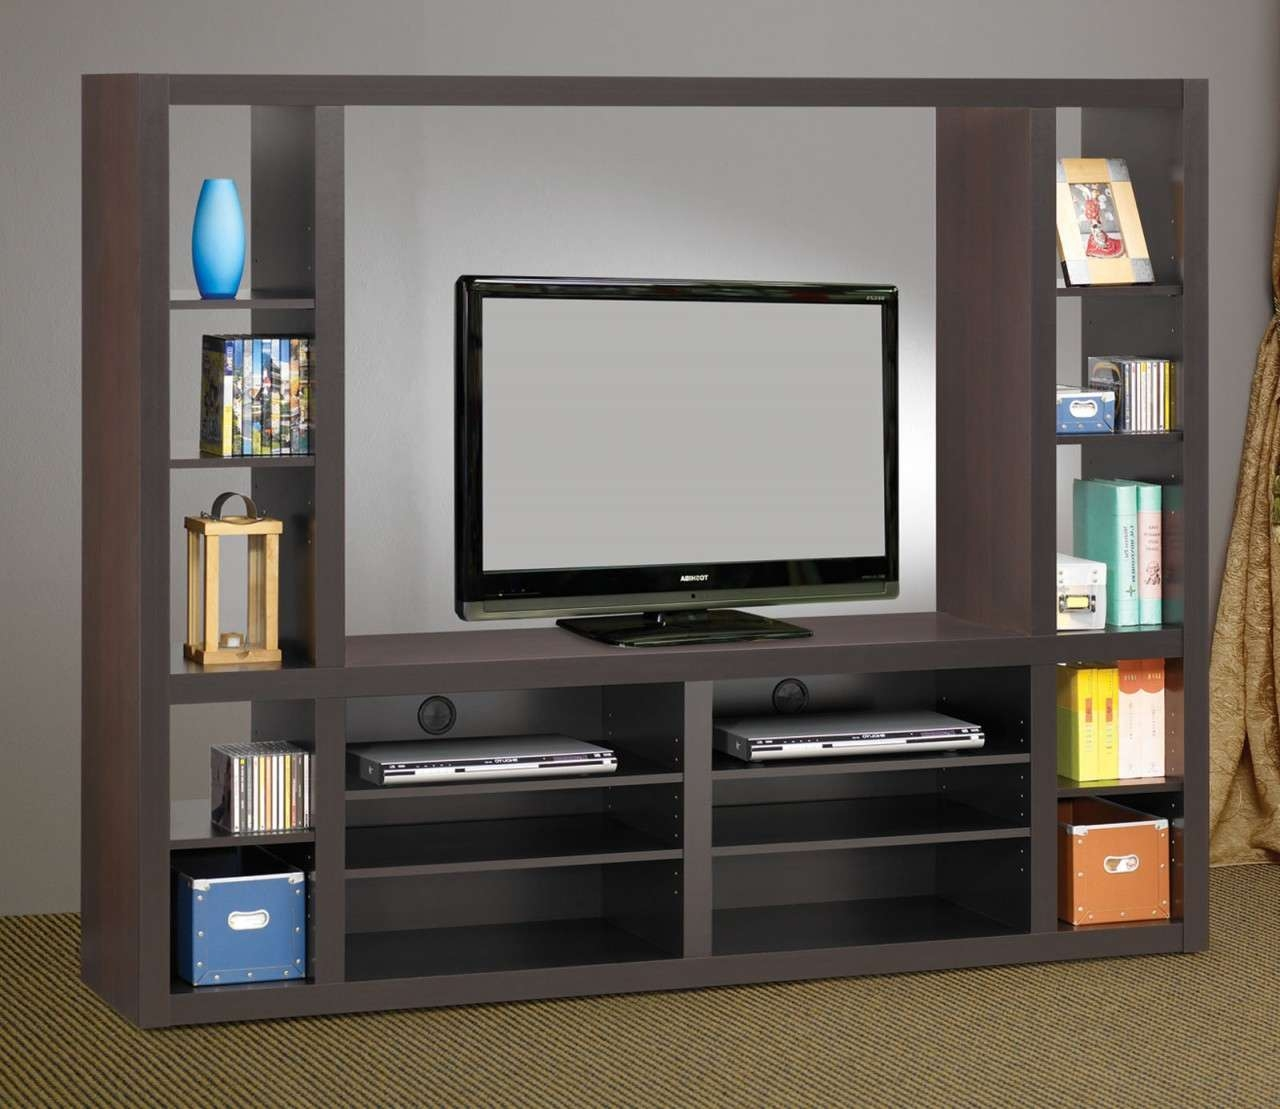 Wall Mounted Tv Cabinets For Flat Screens With Doors – Imanisr Pertaining To Wall Mounted Tv Stands For Flat Screens (View 11 of 15)